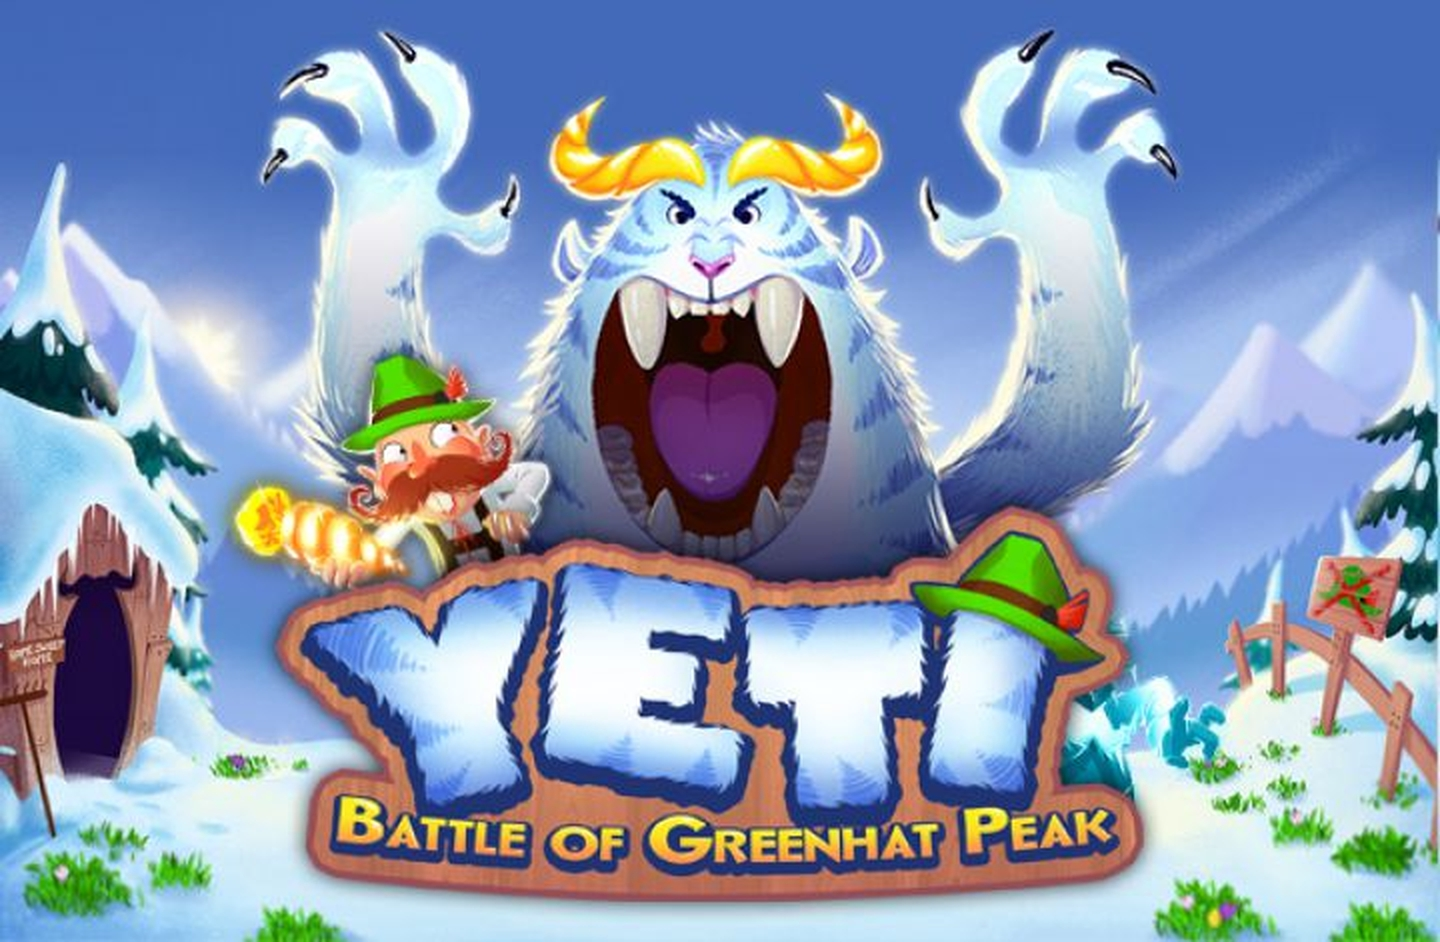 The Yeti Battle of Greenhat Peak Online Slot Demo Game by Thunderkick